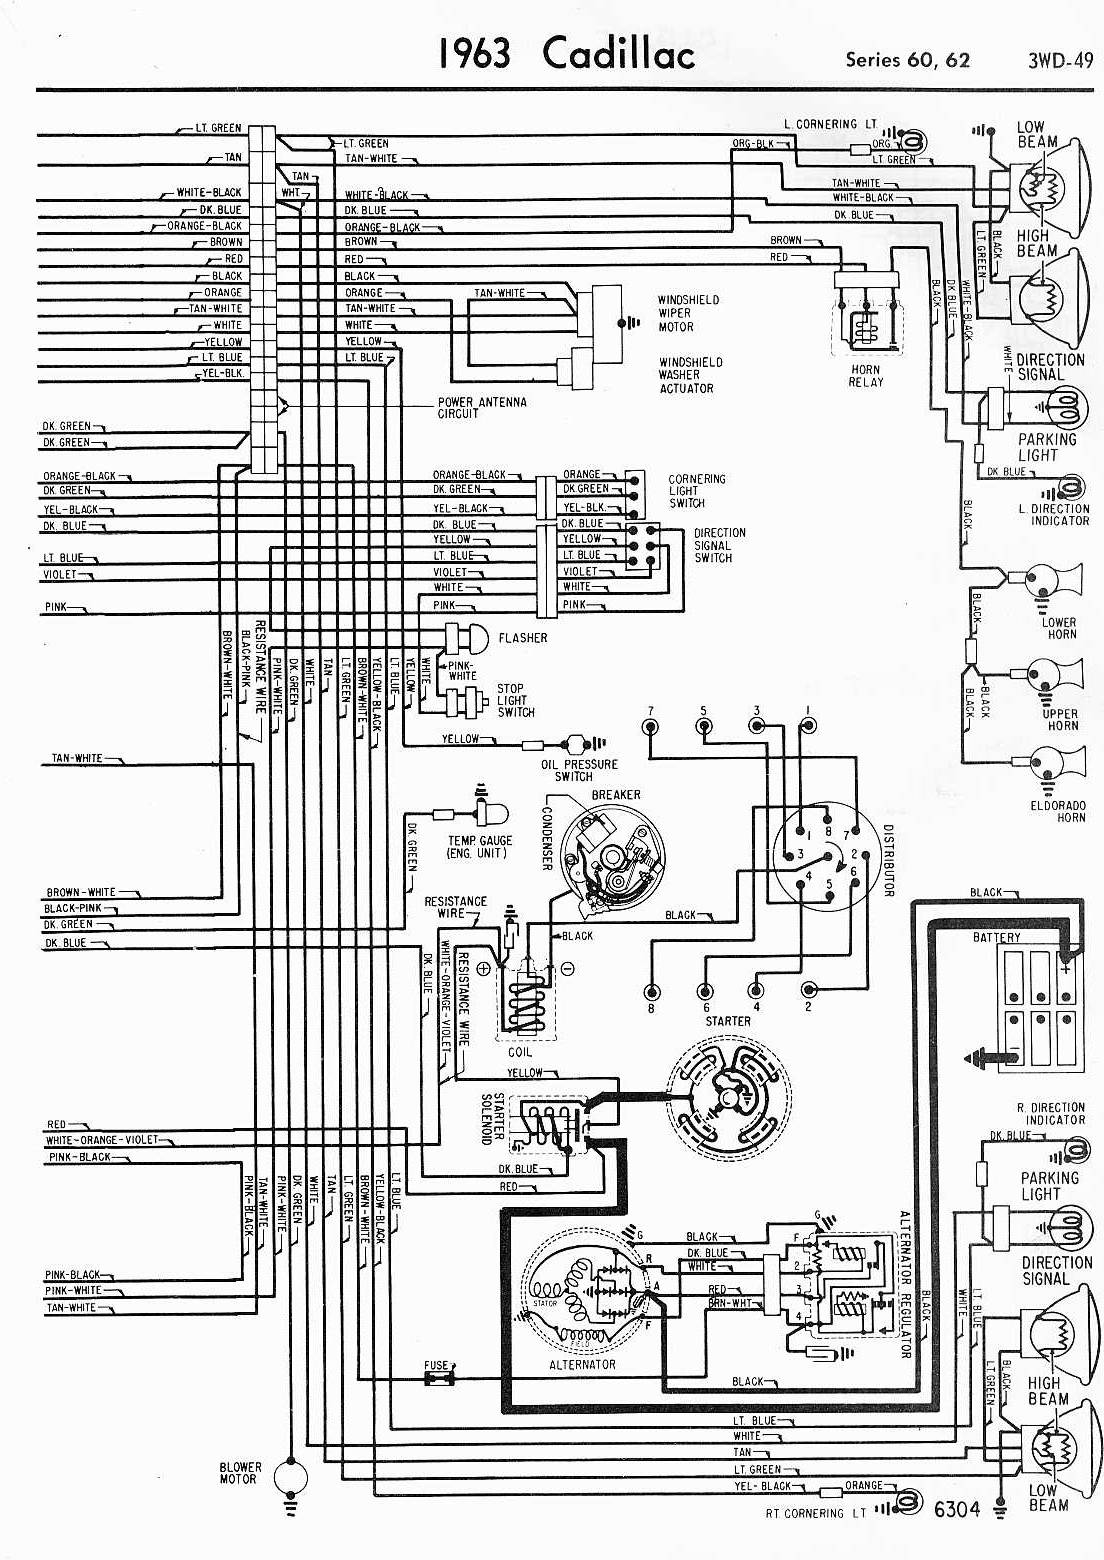 cadillac car manuals wiring diagrams pdf fault codes rh automotive manuals net cadillac wiring diagrams free cadillac wiring diagrams / schematics